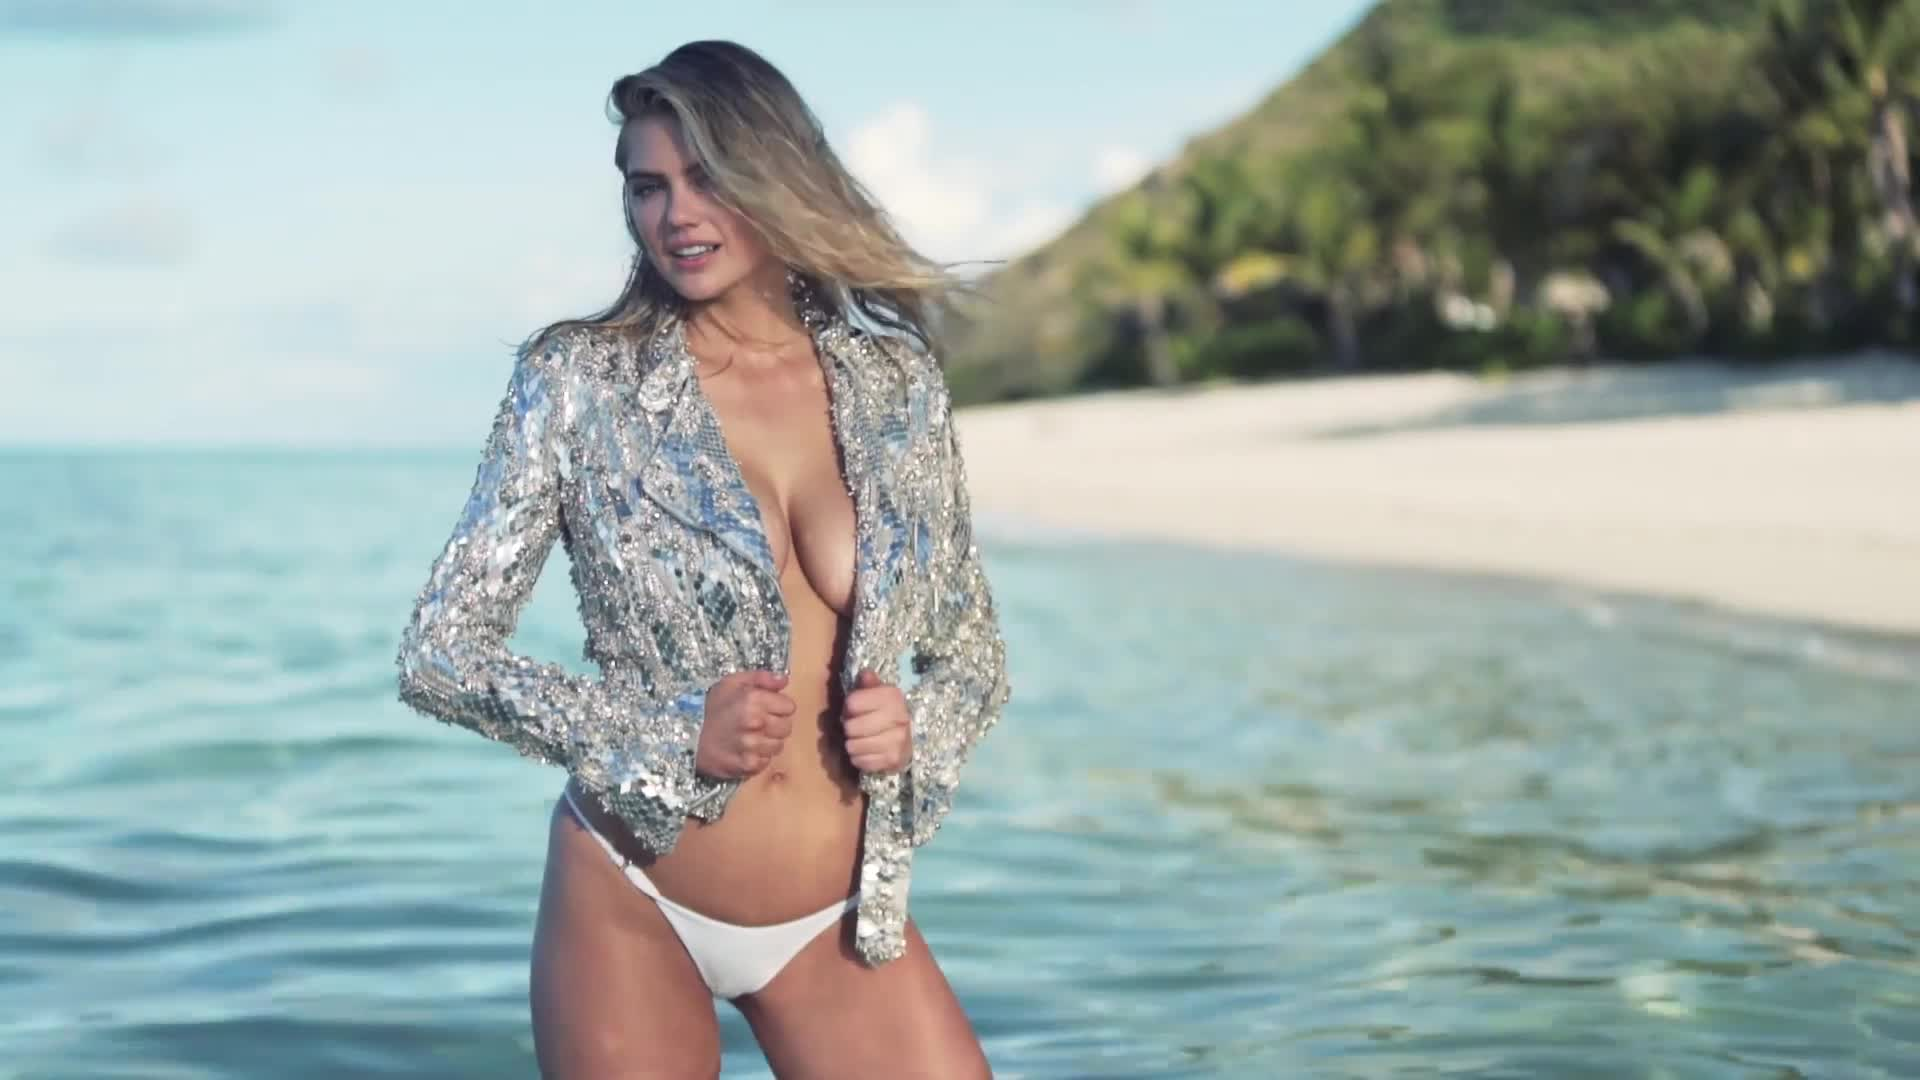 celebs, kate upton, swimsuit, Kate Upton GIFs